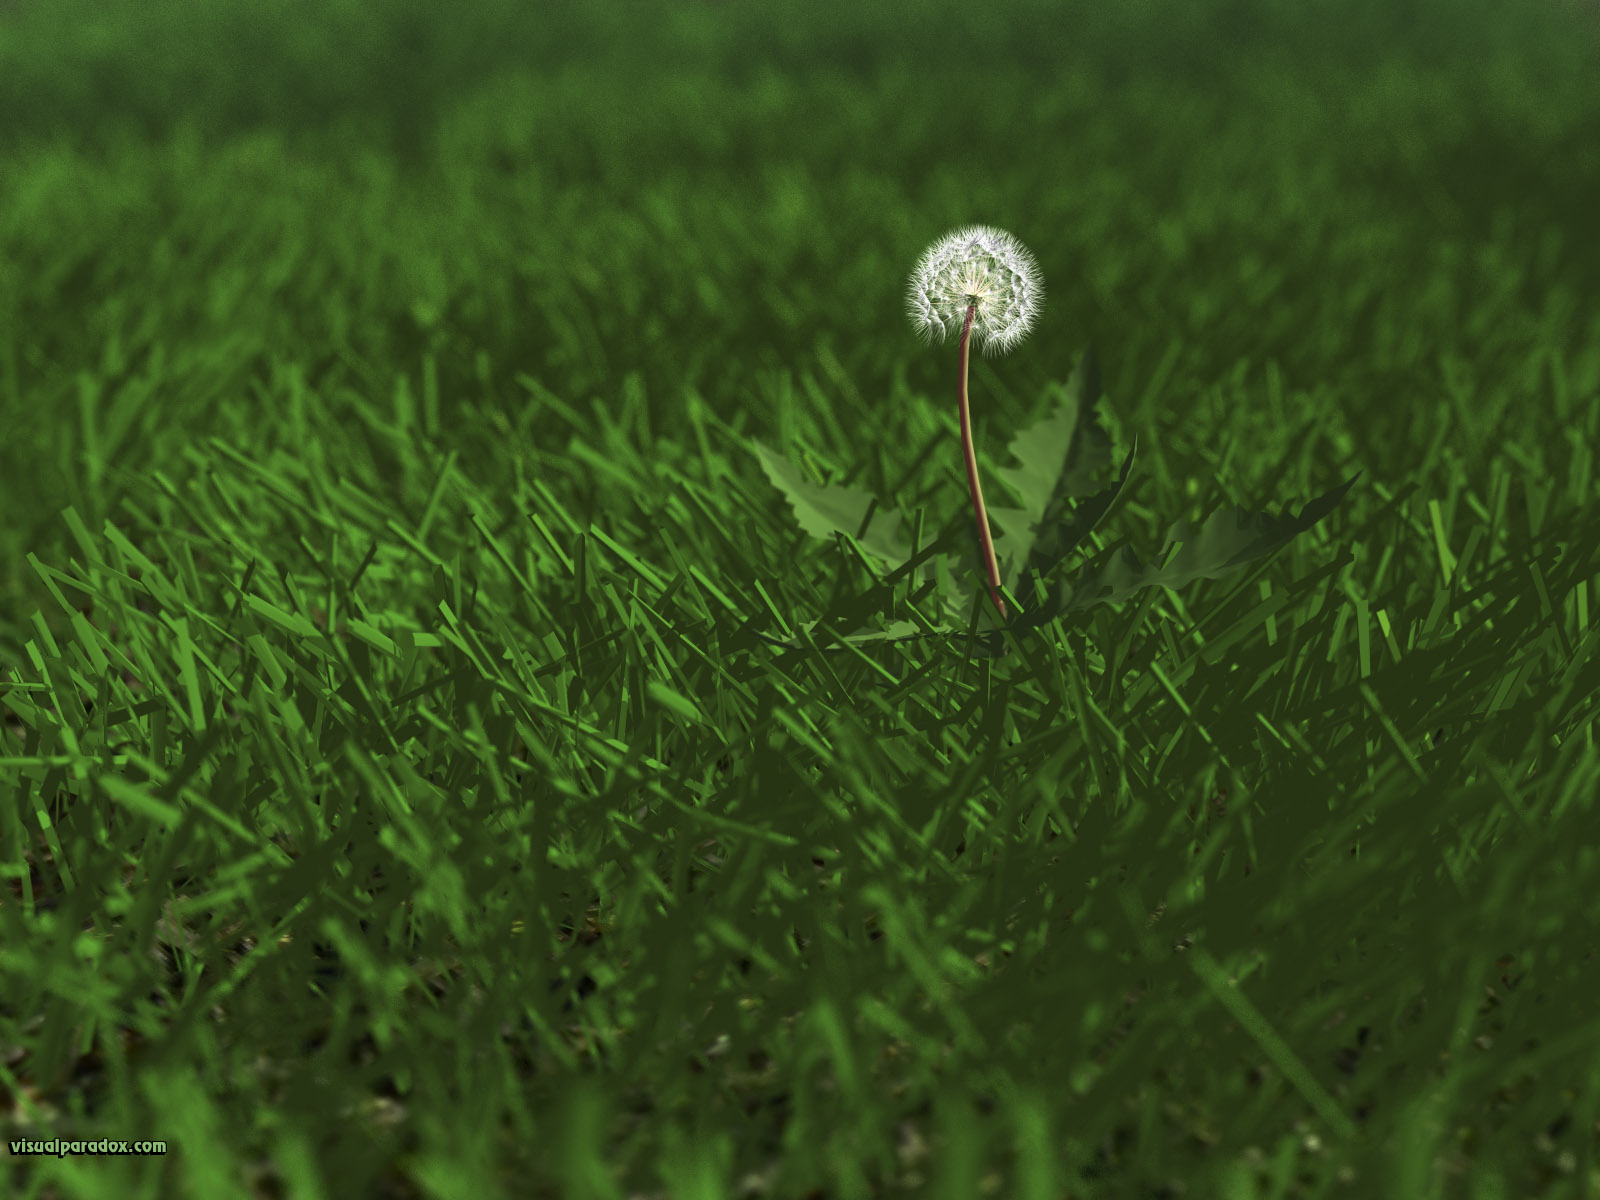 weed, flower, grass, lawn, yard, dandylion, seeds, plants, green, 3d, wallpaper